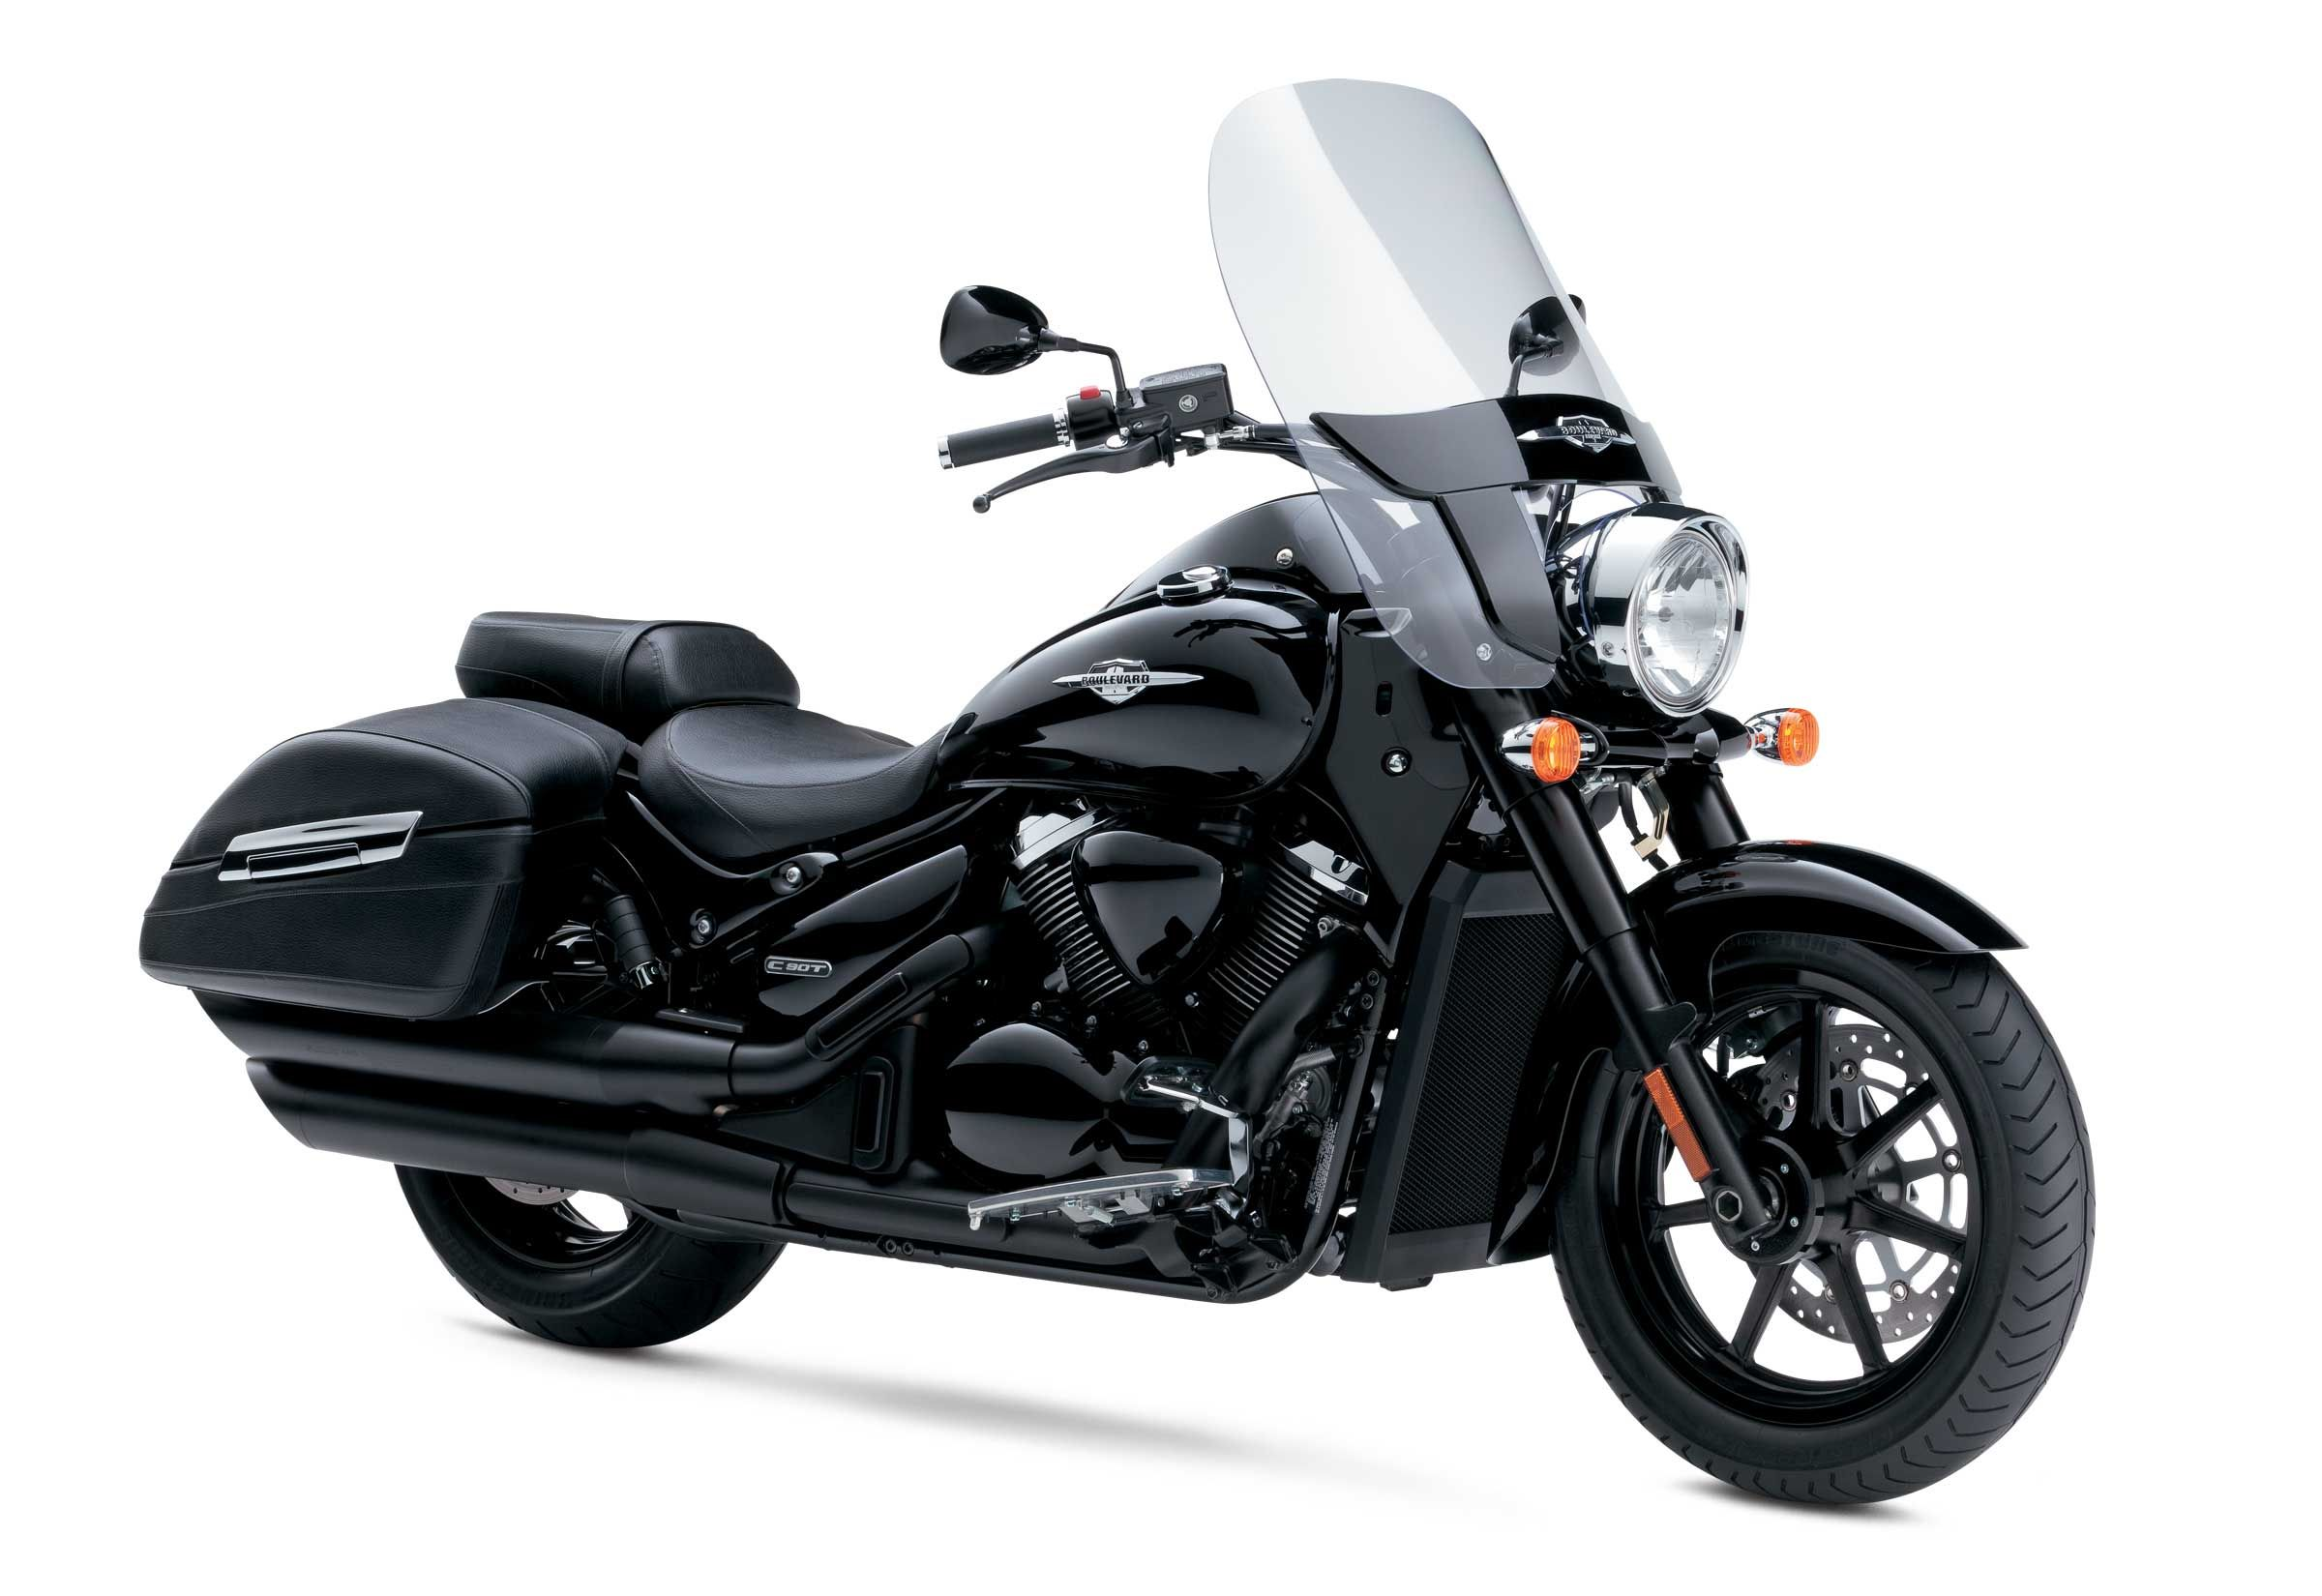 2013 suzuki boulevard c90t b o s s features and specs over the last few years blacked